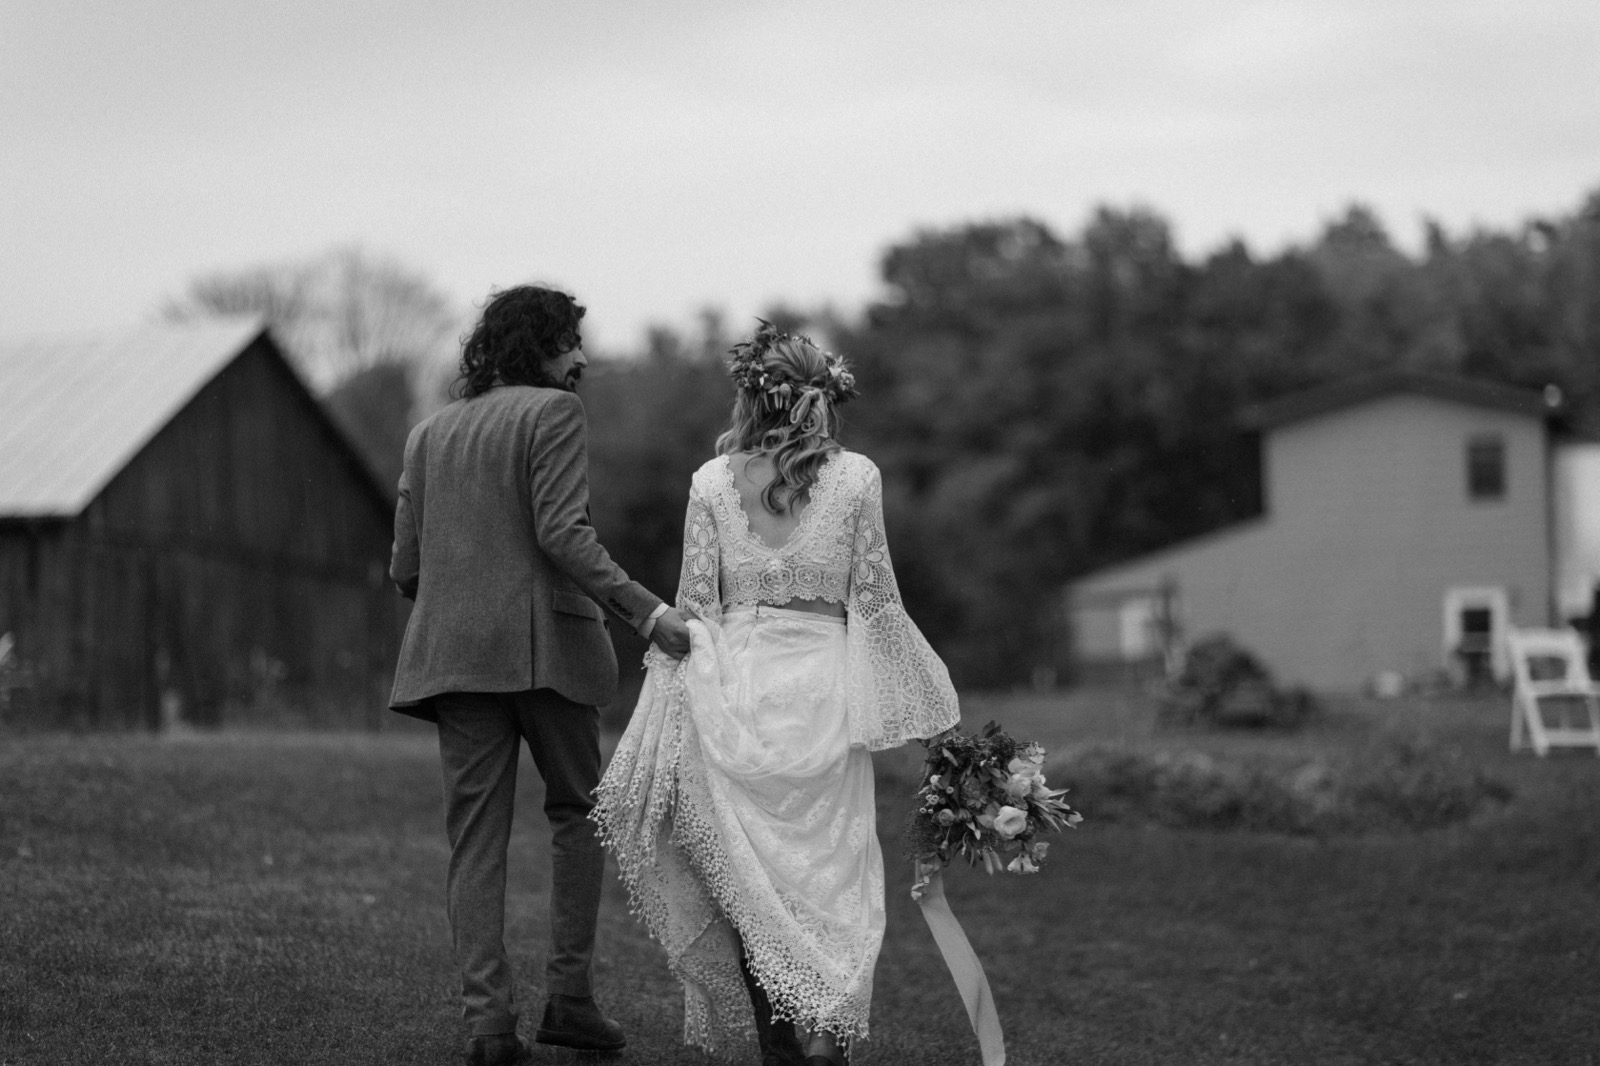 106_Jessy & Perry Wedding 0506_autumn_cinematic_outdoor_family_fall_michigan_barn_intimate_emotional_wedding